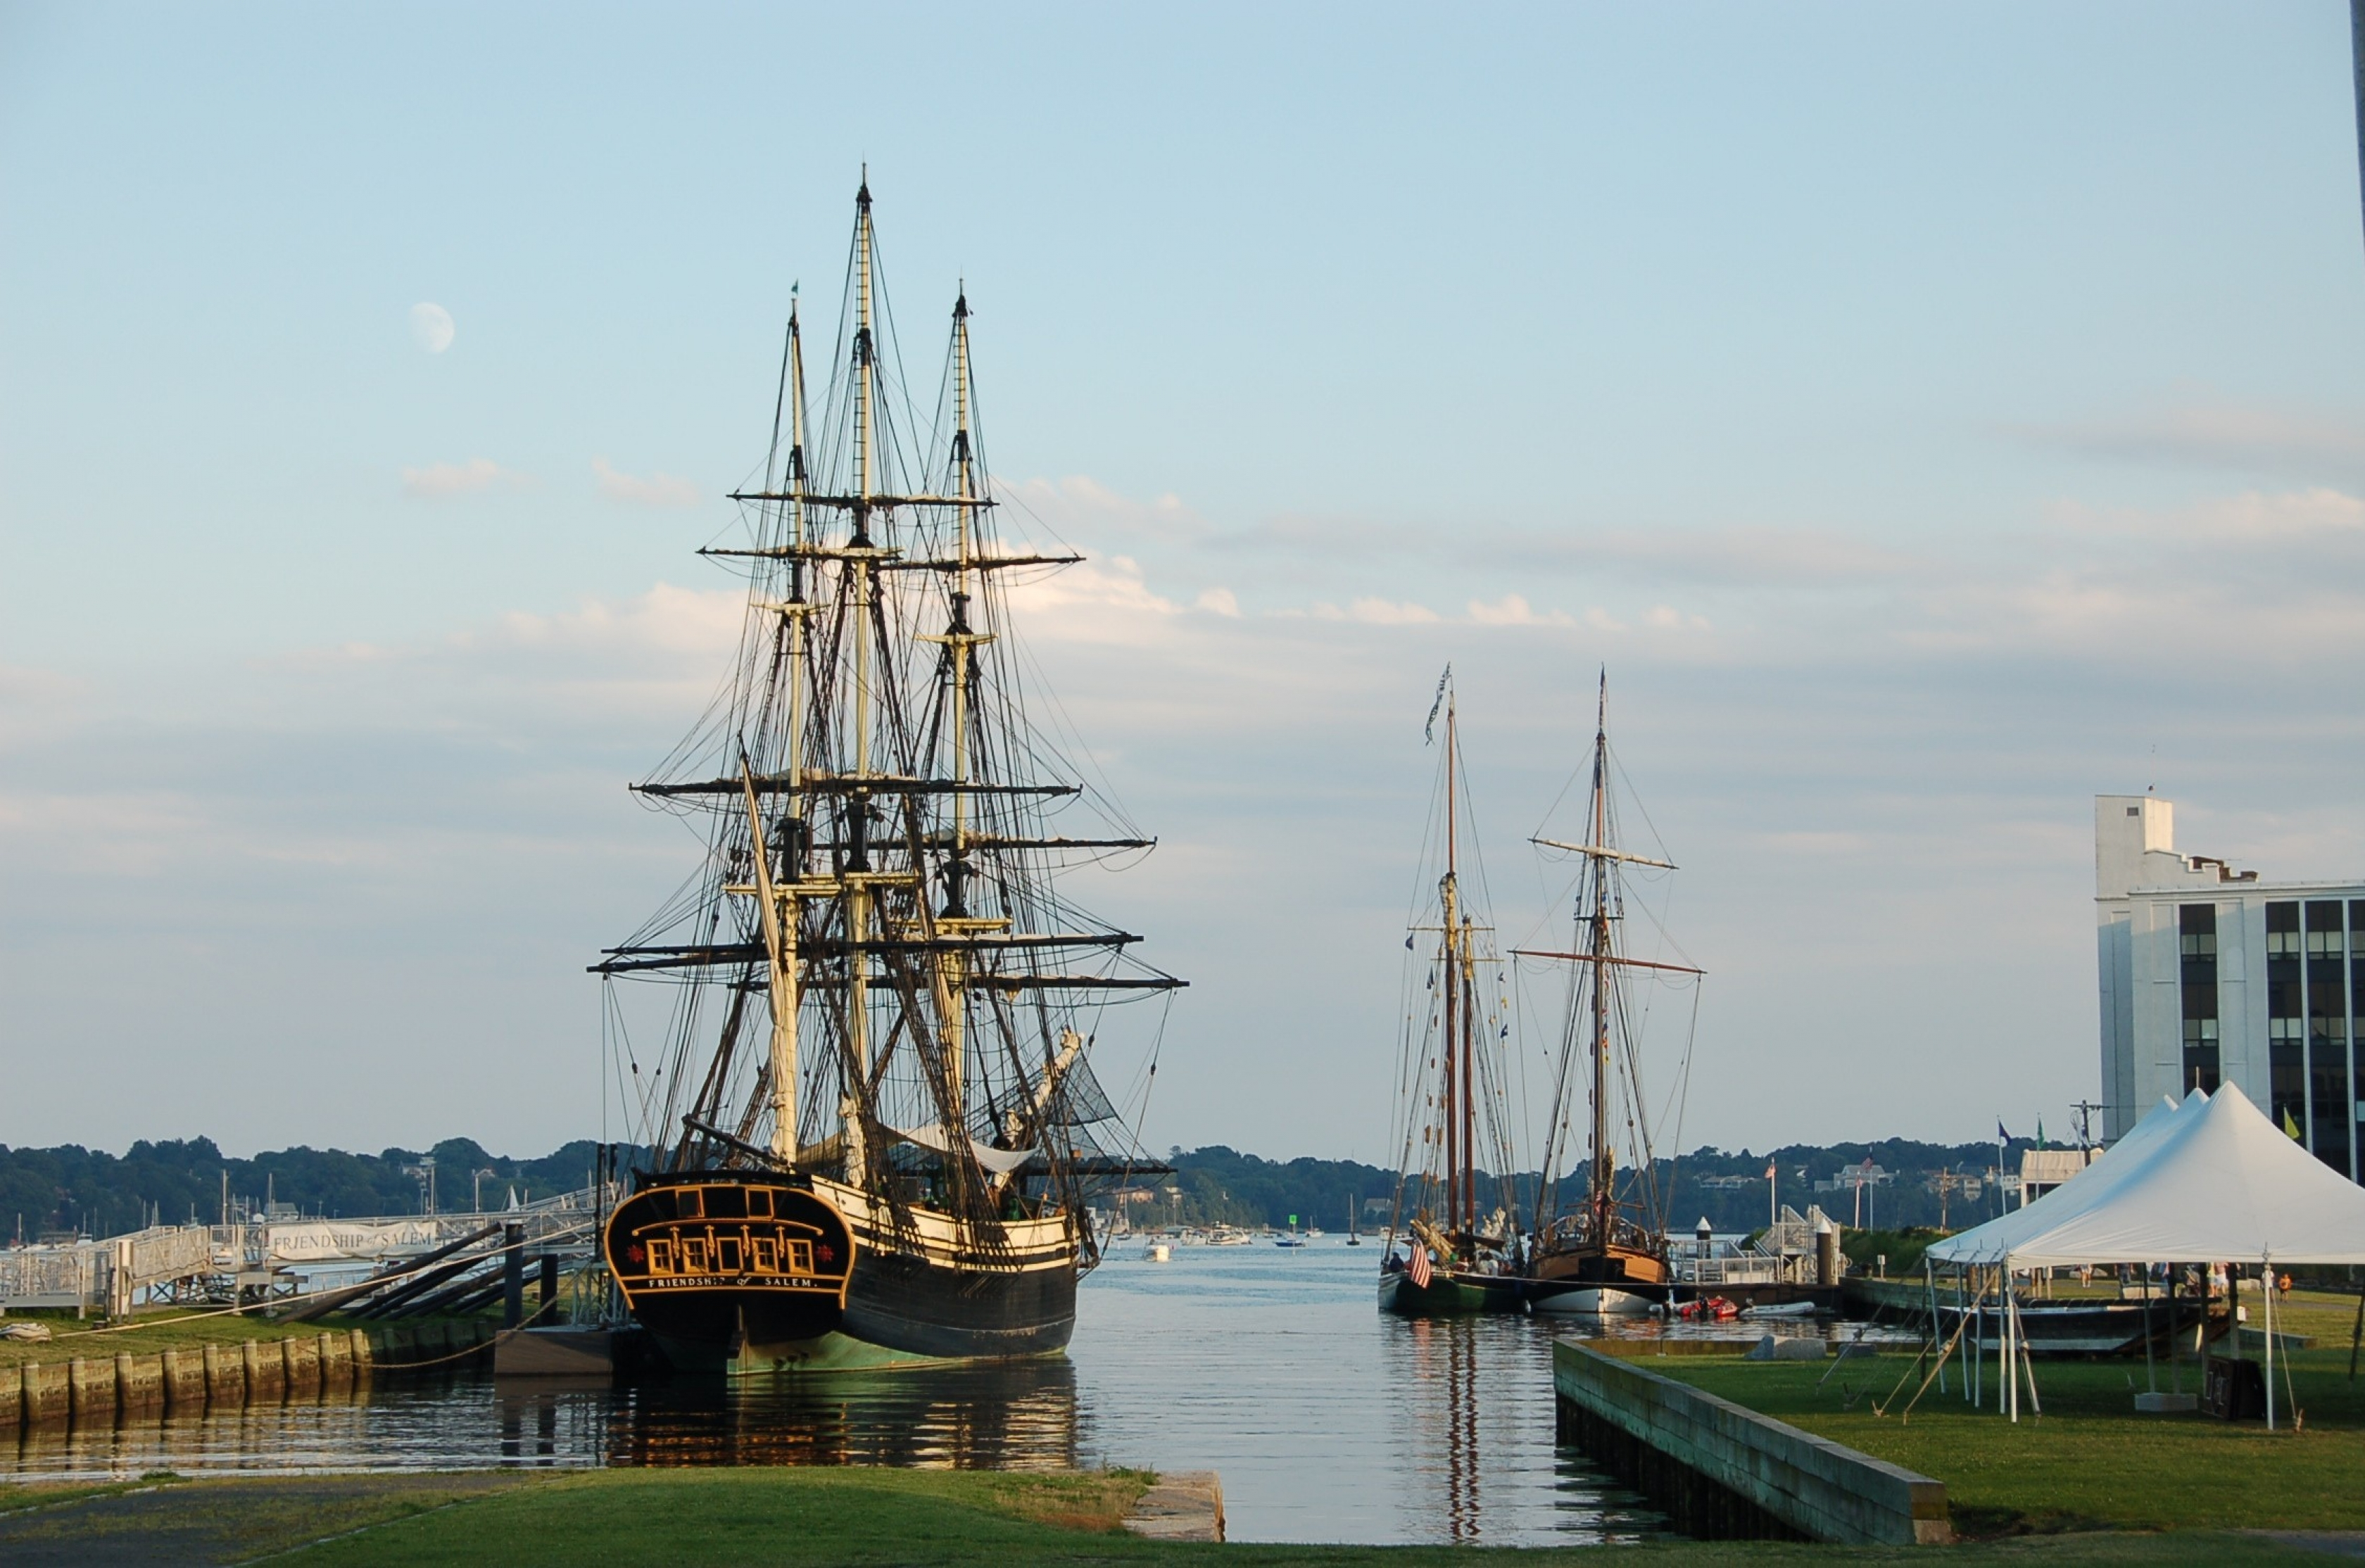 The Friendship of Salem (wooden, 171-foot three-masted boat) anchored in the harbor of Salem Maritime National Historic Park